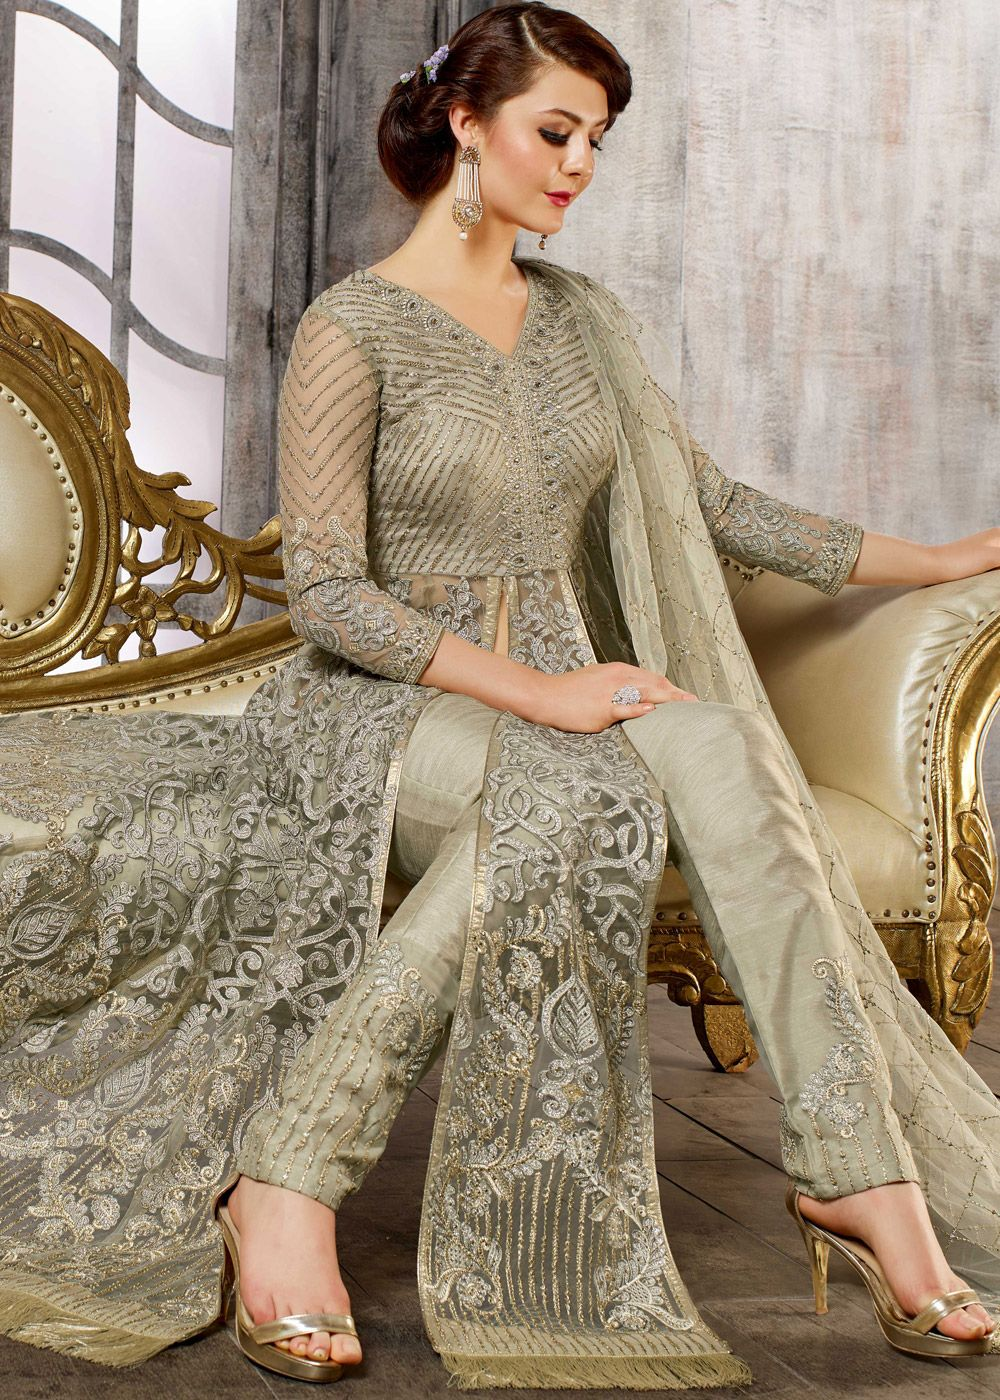 28ad803c05 Featuring a ravishing moss green net front slit kameez adorned with zari,  resham embroidery, lace, stone work and tassels at hemline.